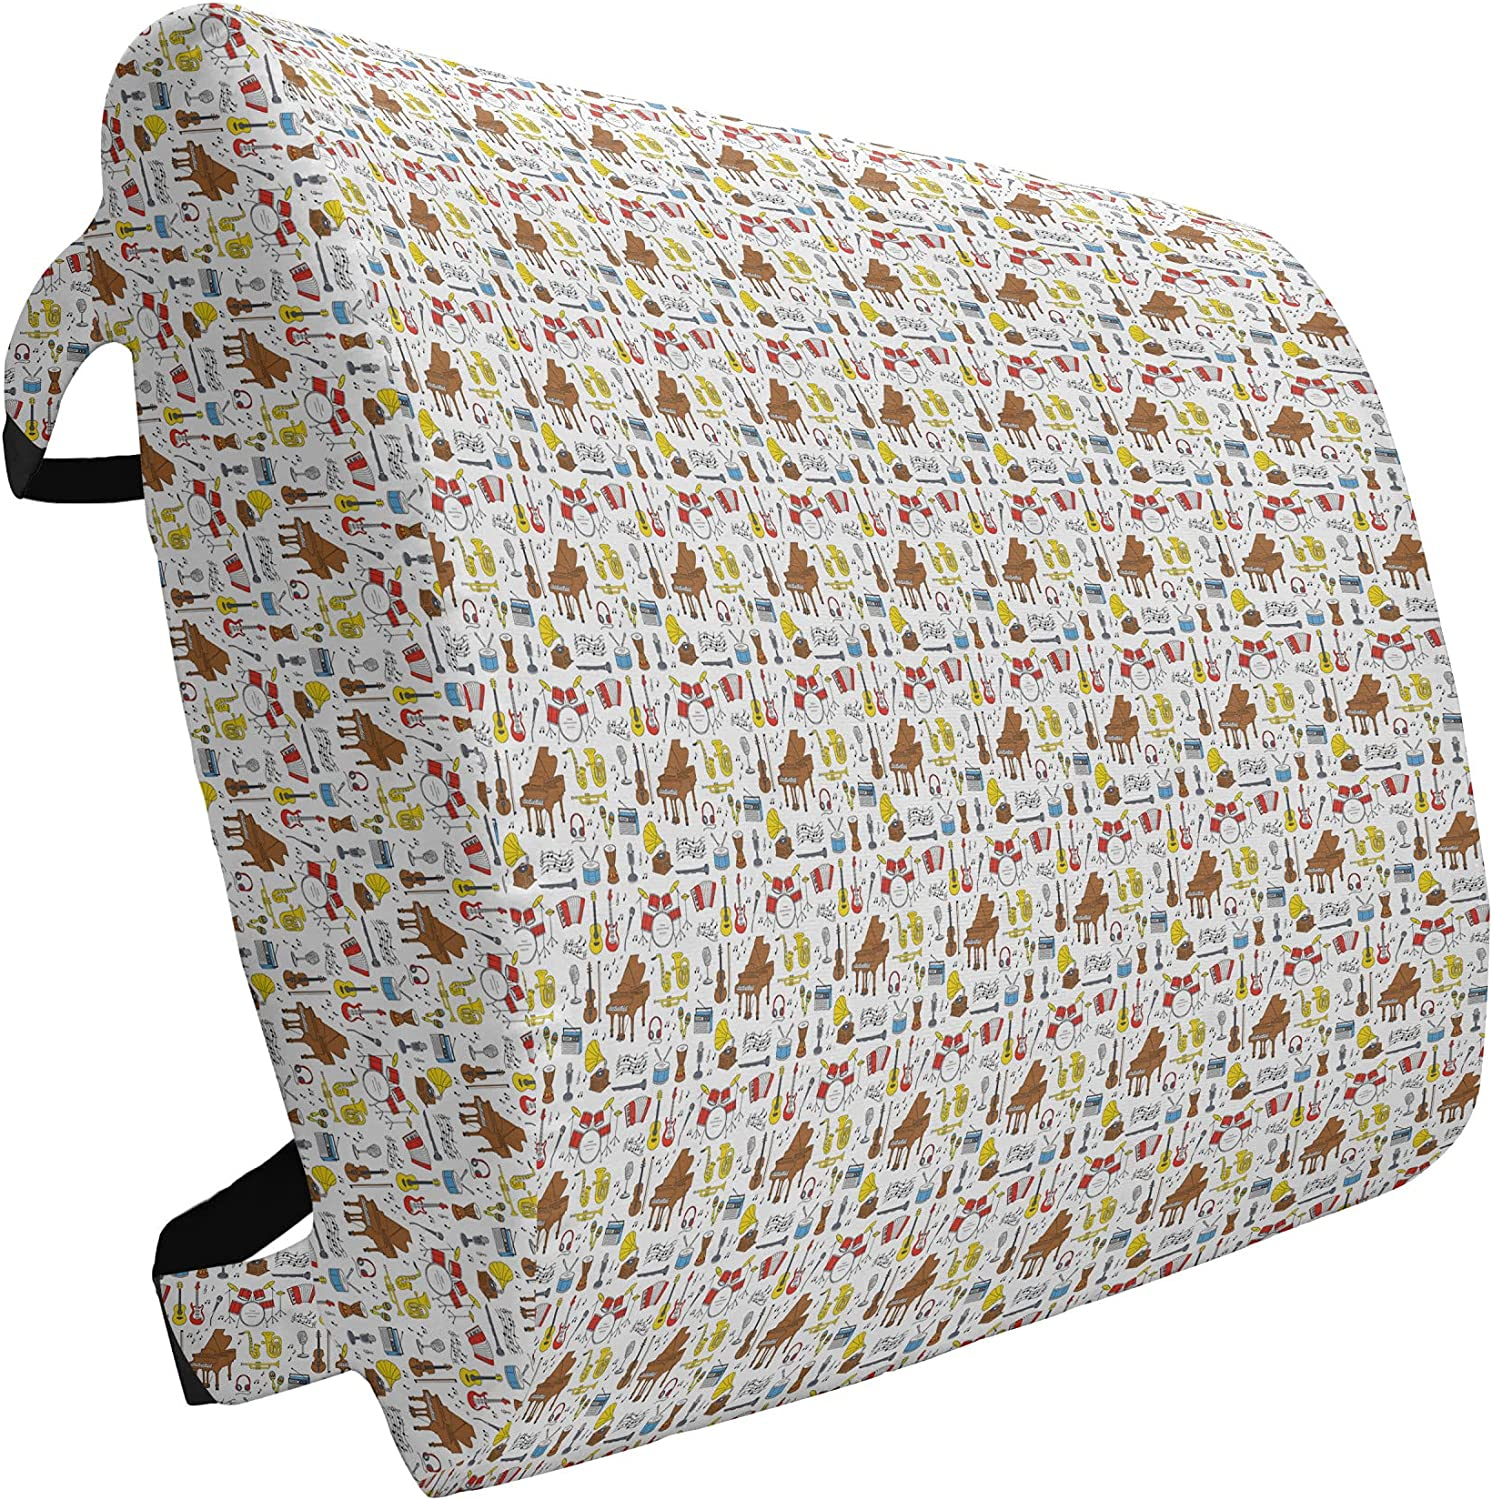 Ambesonne Jazz Max 63% OFF Music Lumbar Animer and price revision Pillow Instruments Musical Pattern